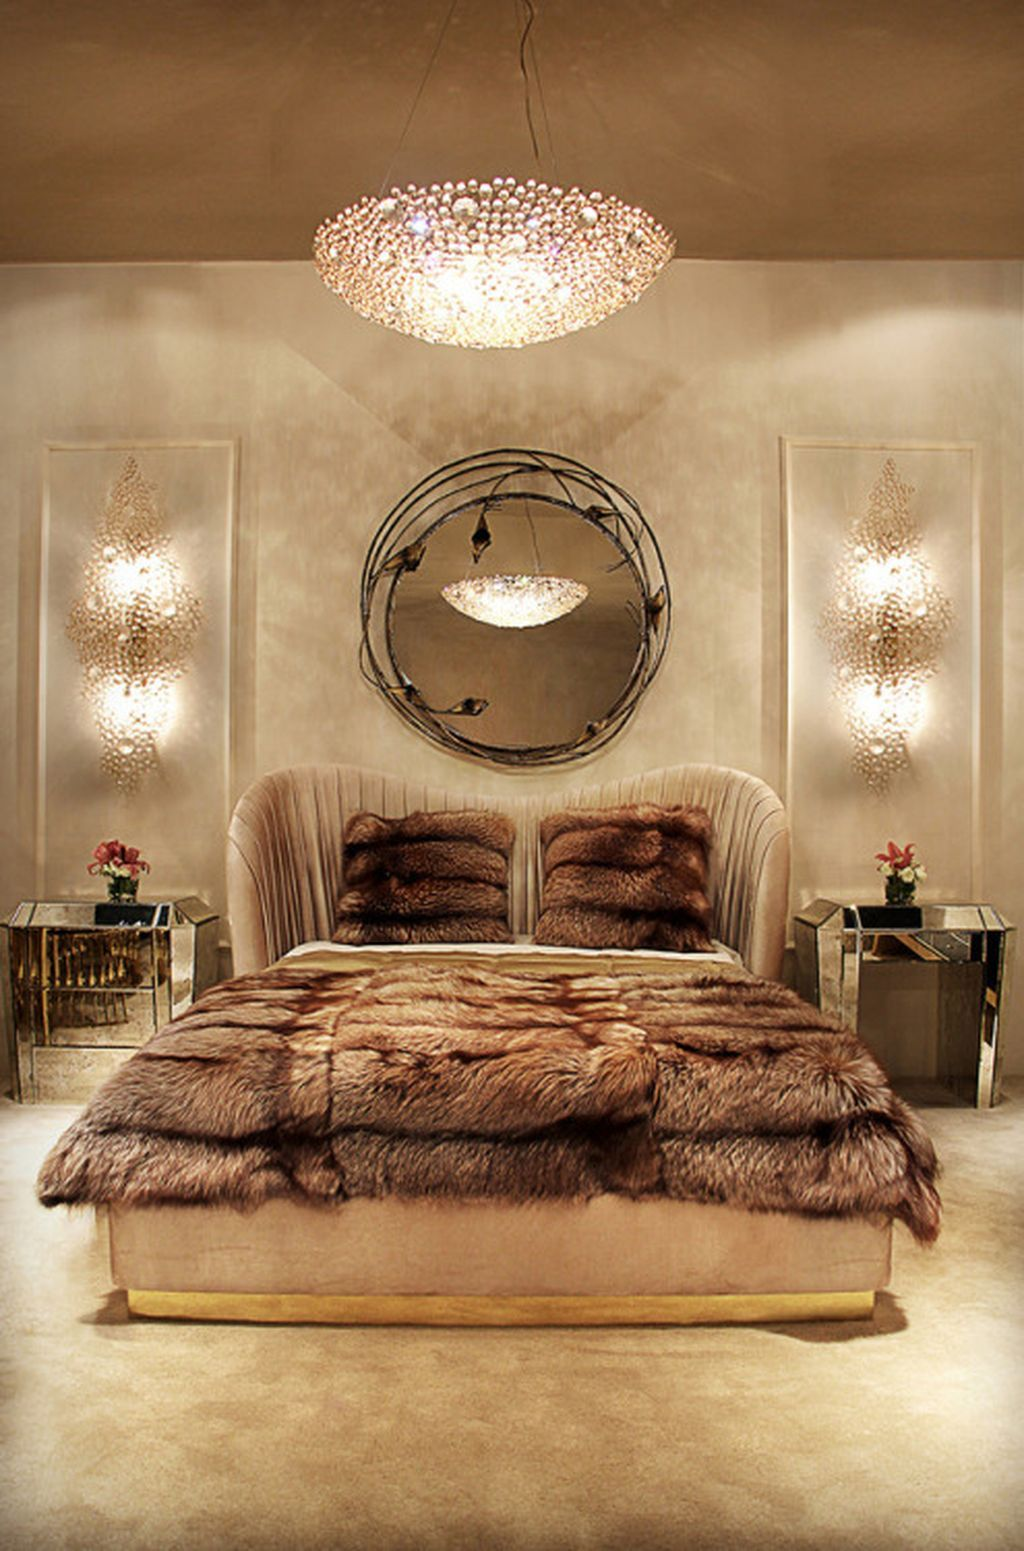 Bedroom Design Ideas Cheap Custom 55 Greatest Bedroom Decor Ideas On A Budget  Bedrooms And Design Inspiration